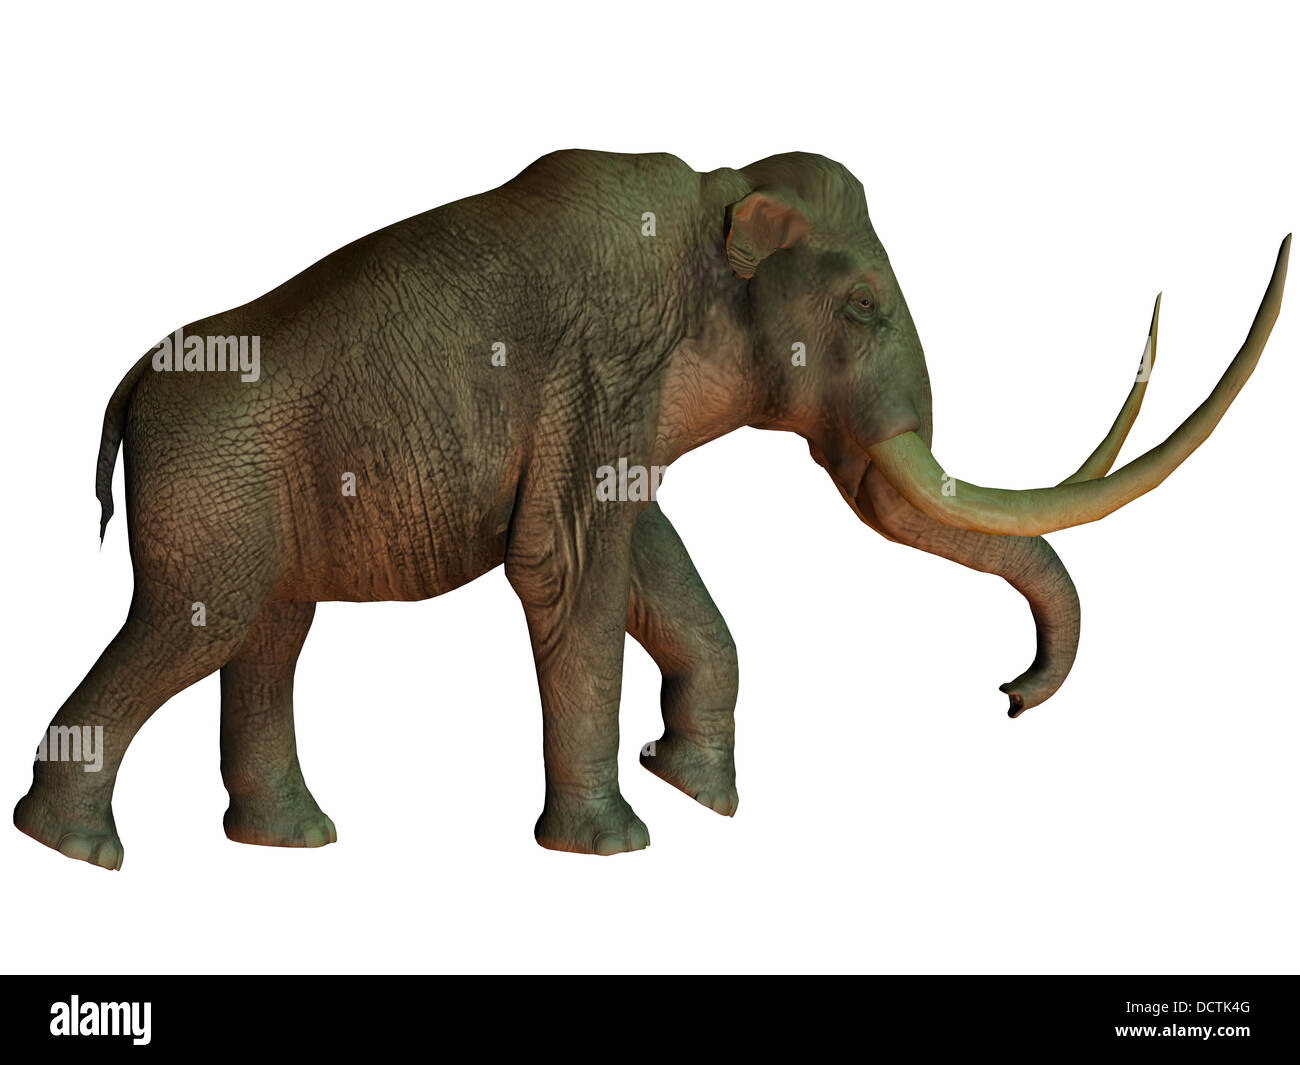 The Columbian mammoth is an extinct species of elephant that inhabited what is now the Americas in the Pleistocene - Stock Image